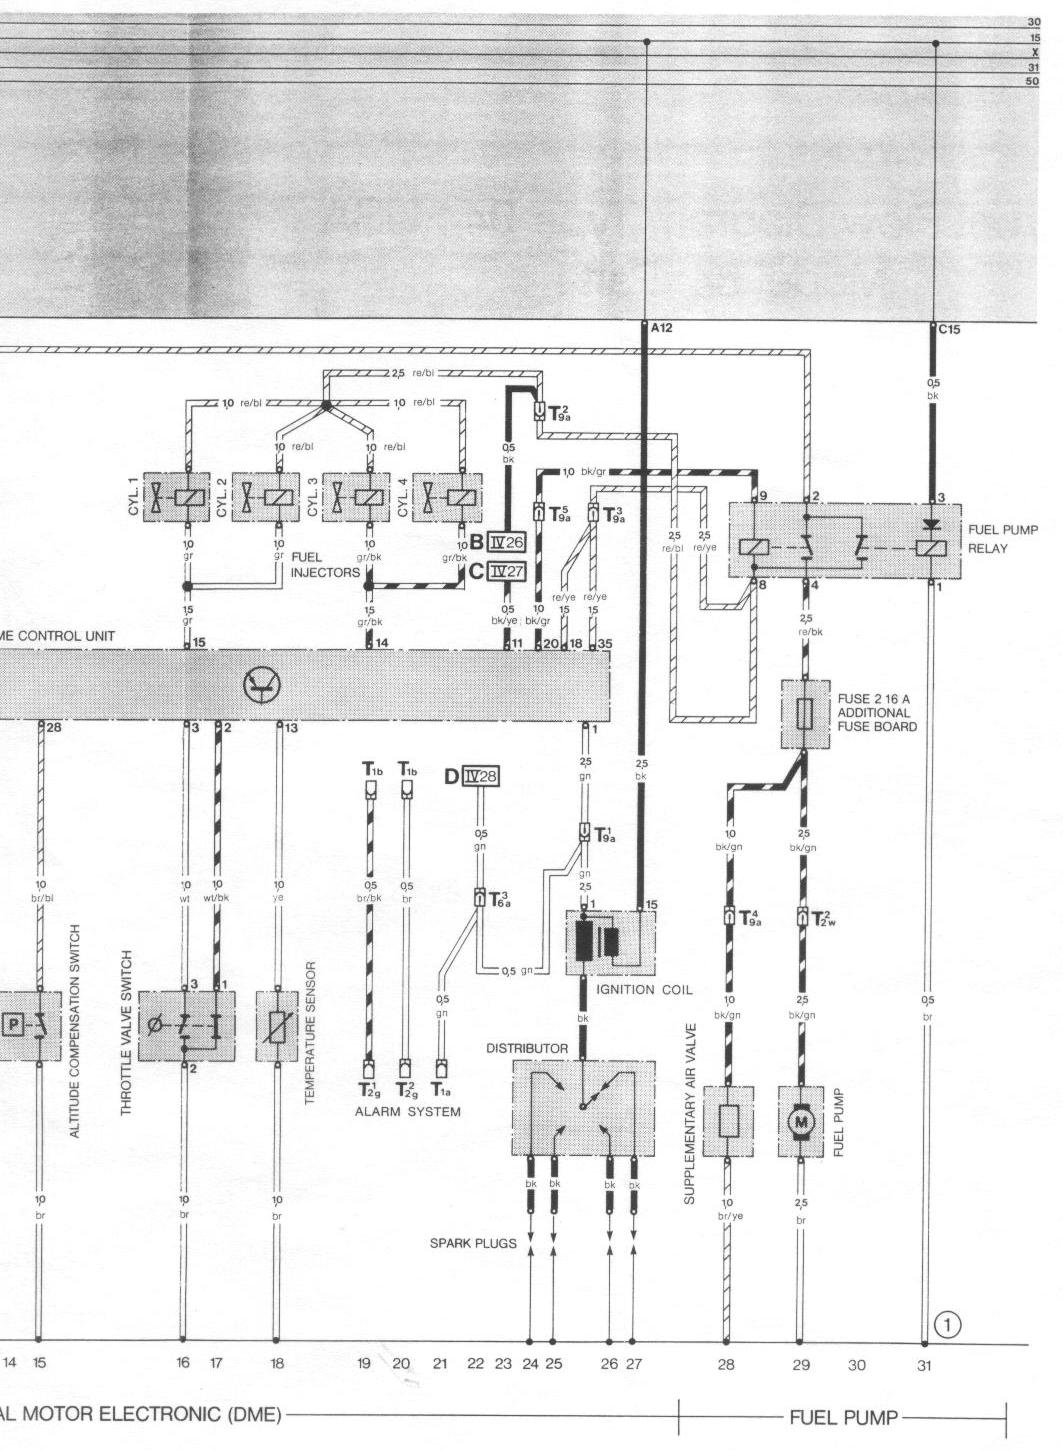 1983 porsche 928 wiring diagram somurich com porch diagram 1983 porsche 928 wiring diagram enchanting porsche [ 1063 x 1450 Pixel ]